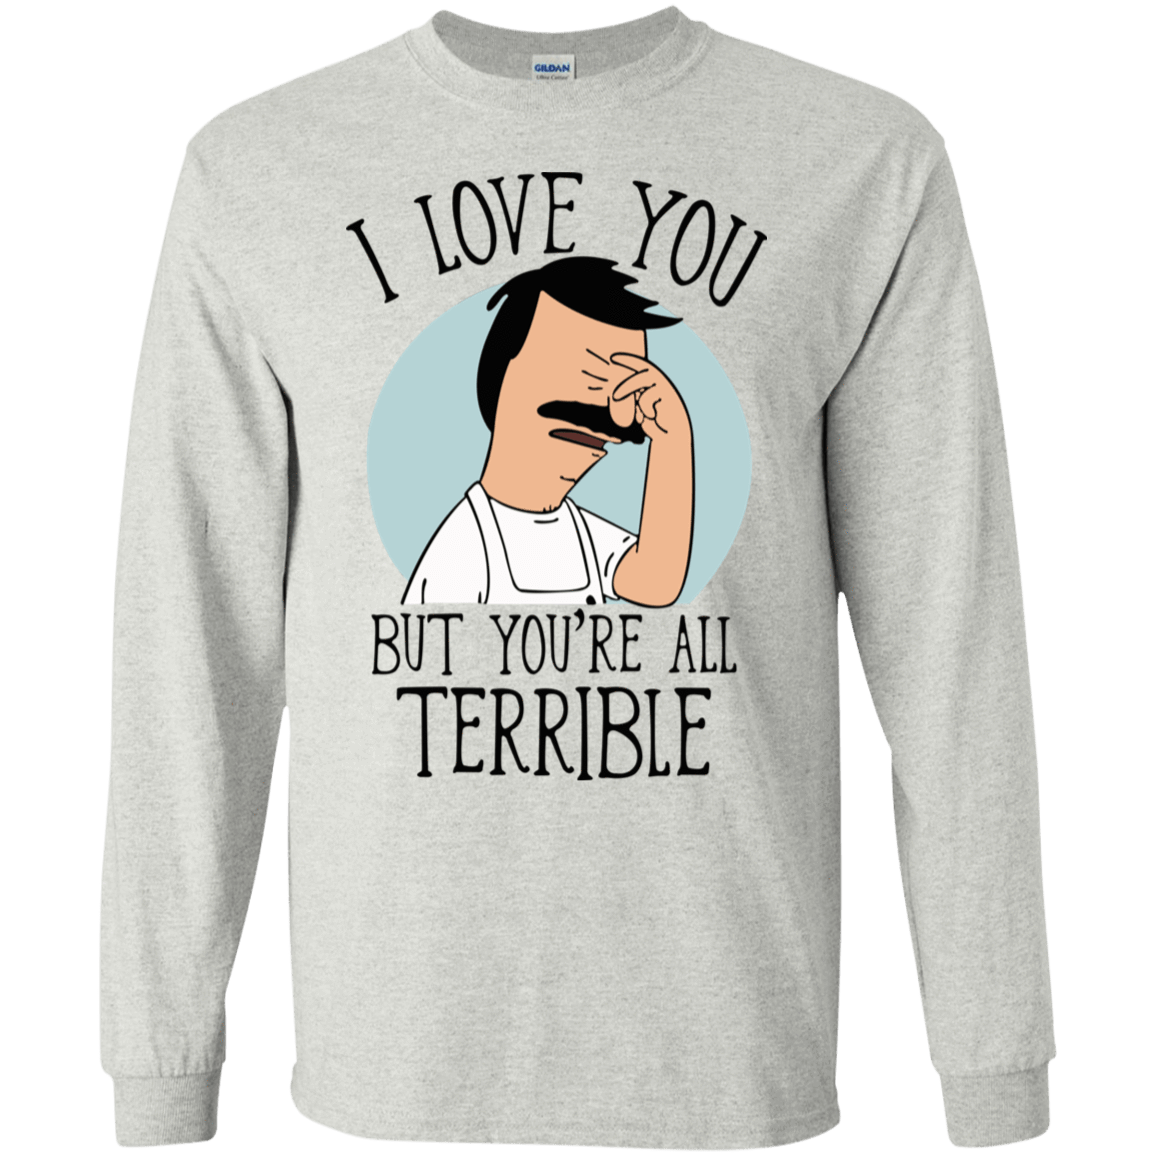 Bob's Burgers: I Love You But You're All Terrible 30-2112-72789299-10754 - Tee Ript